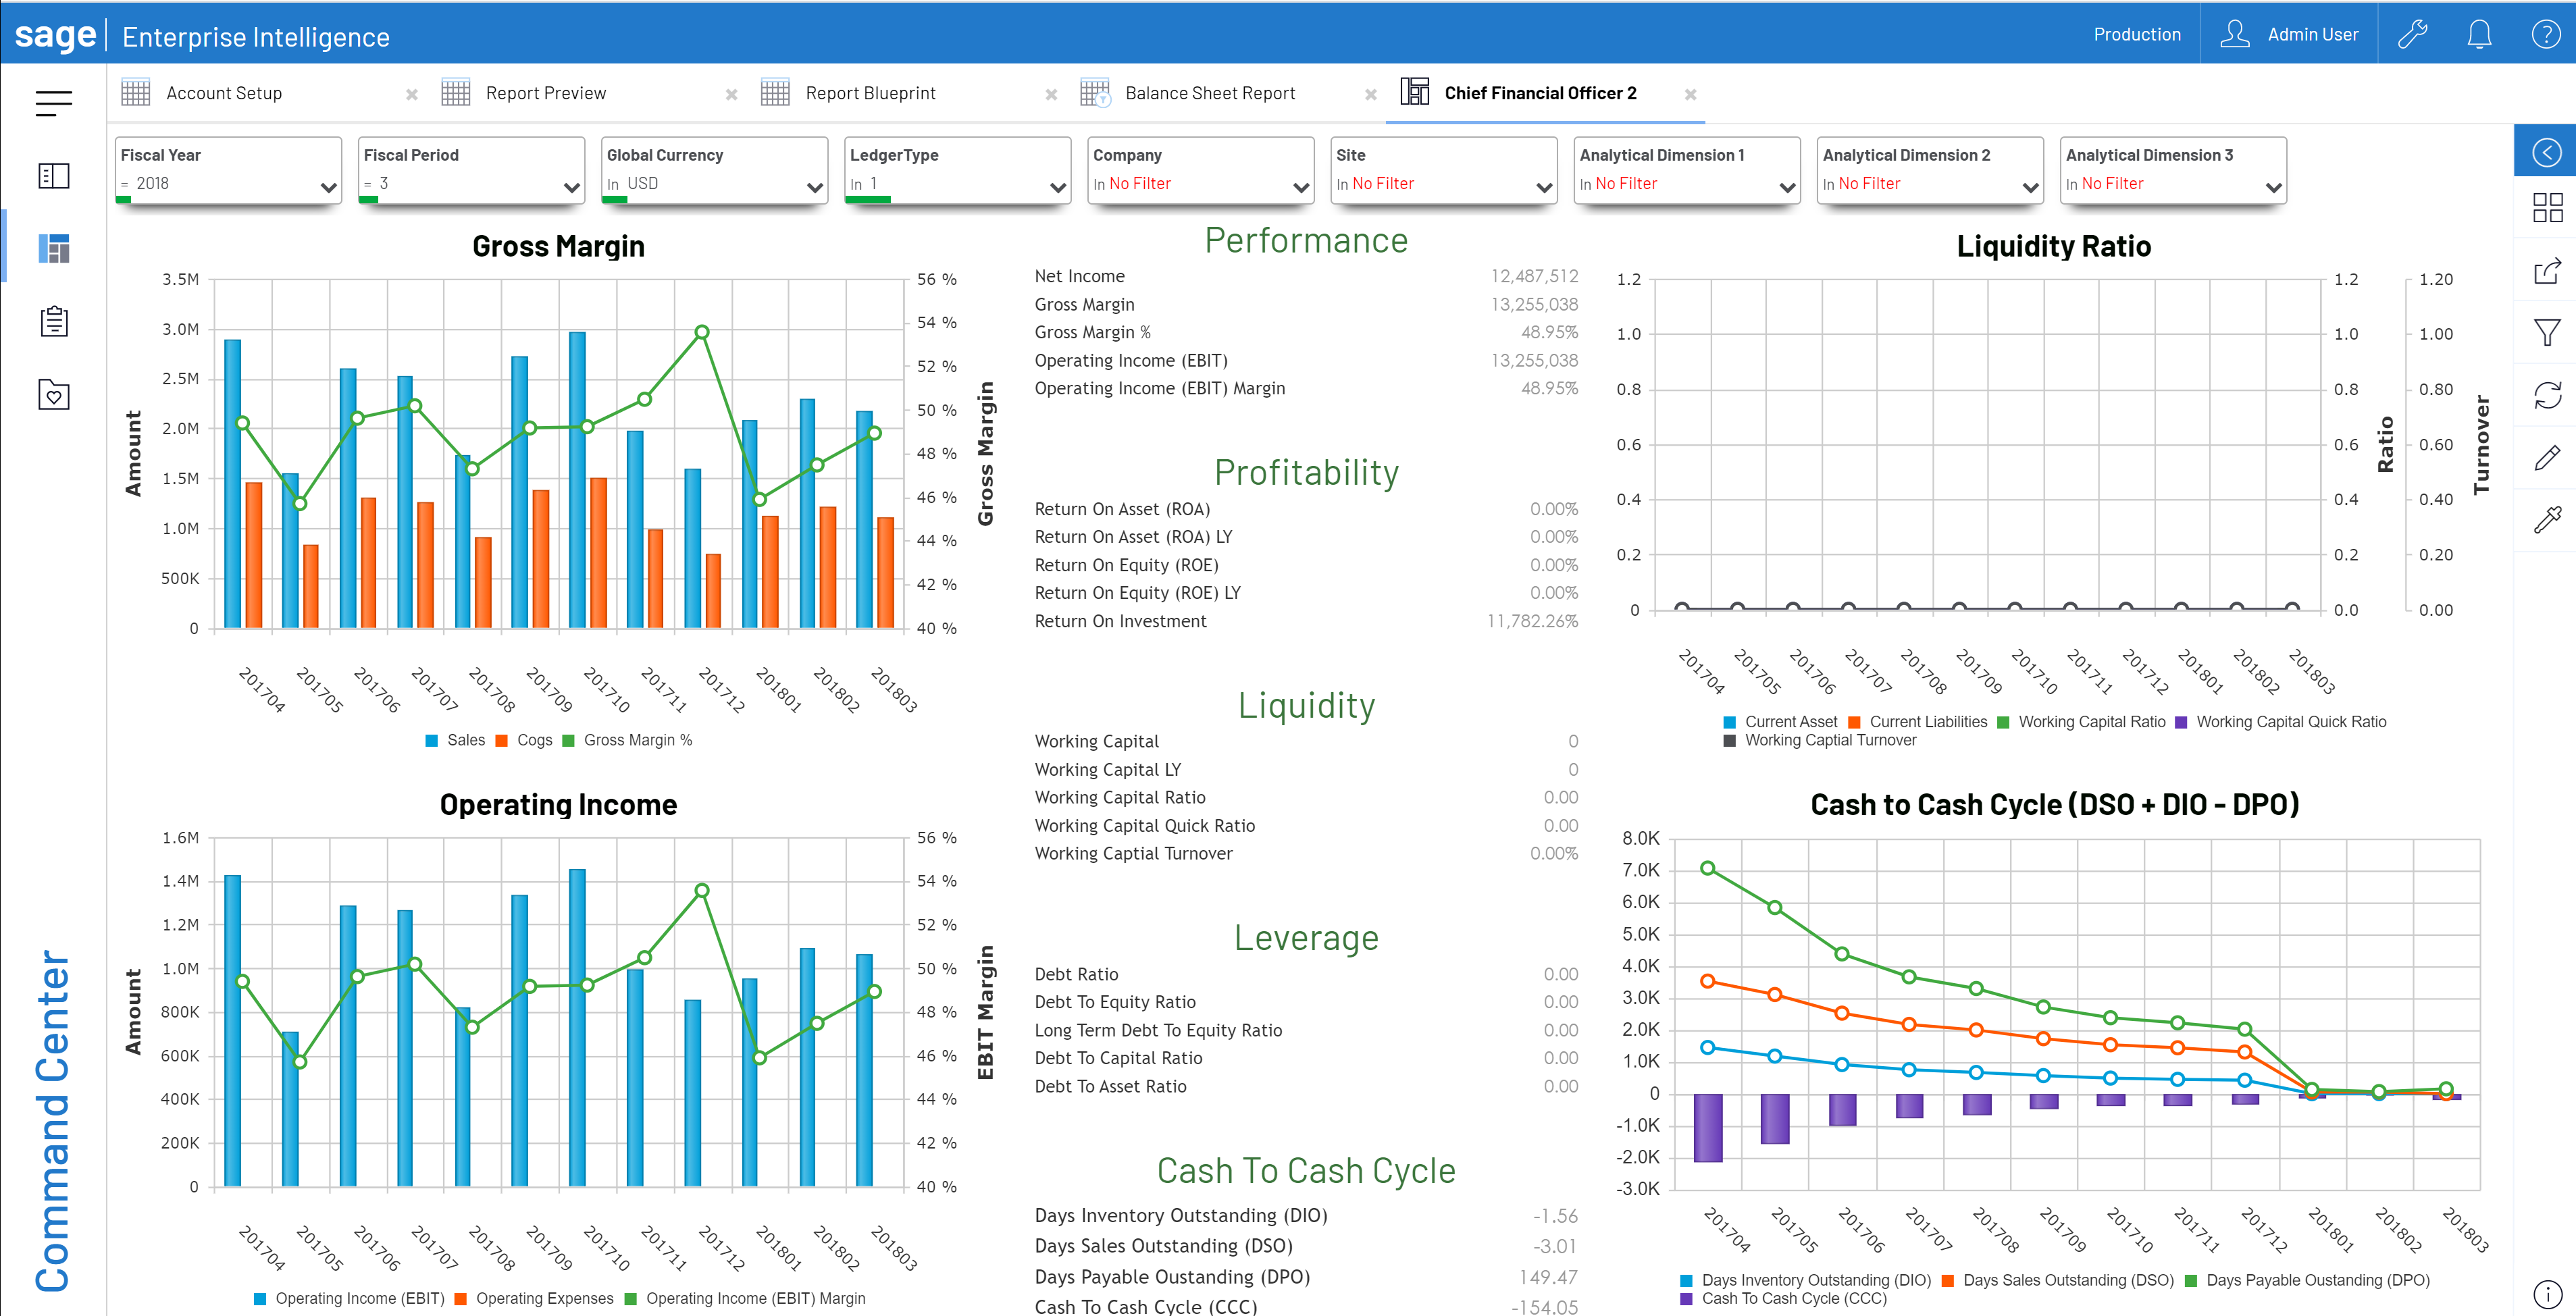 CFO dashboard